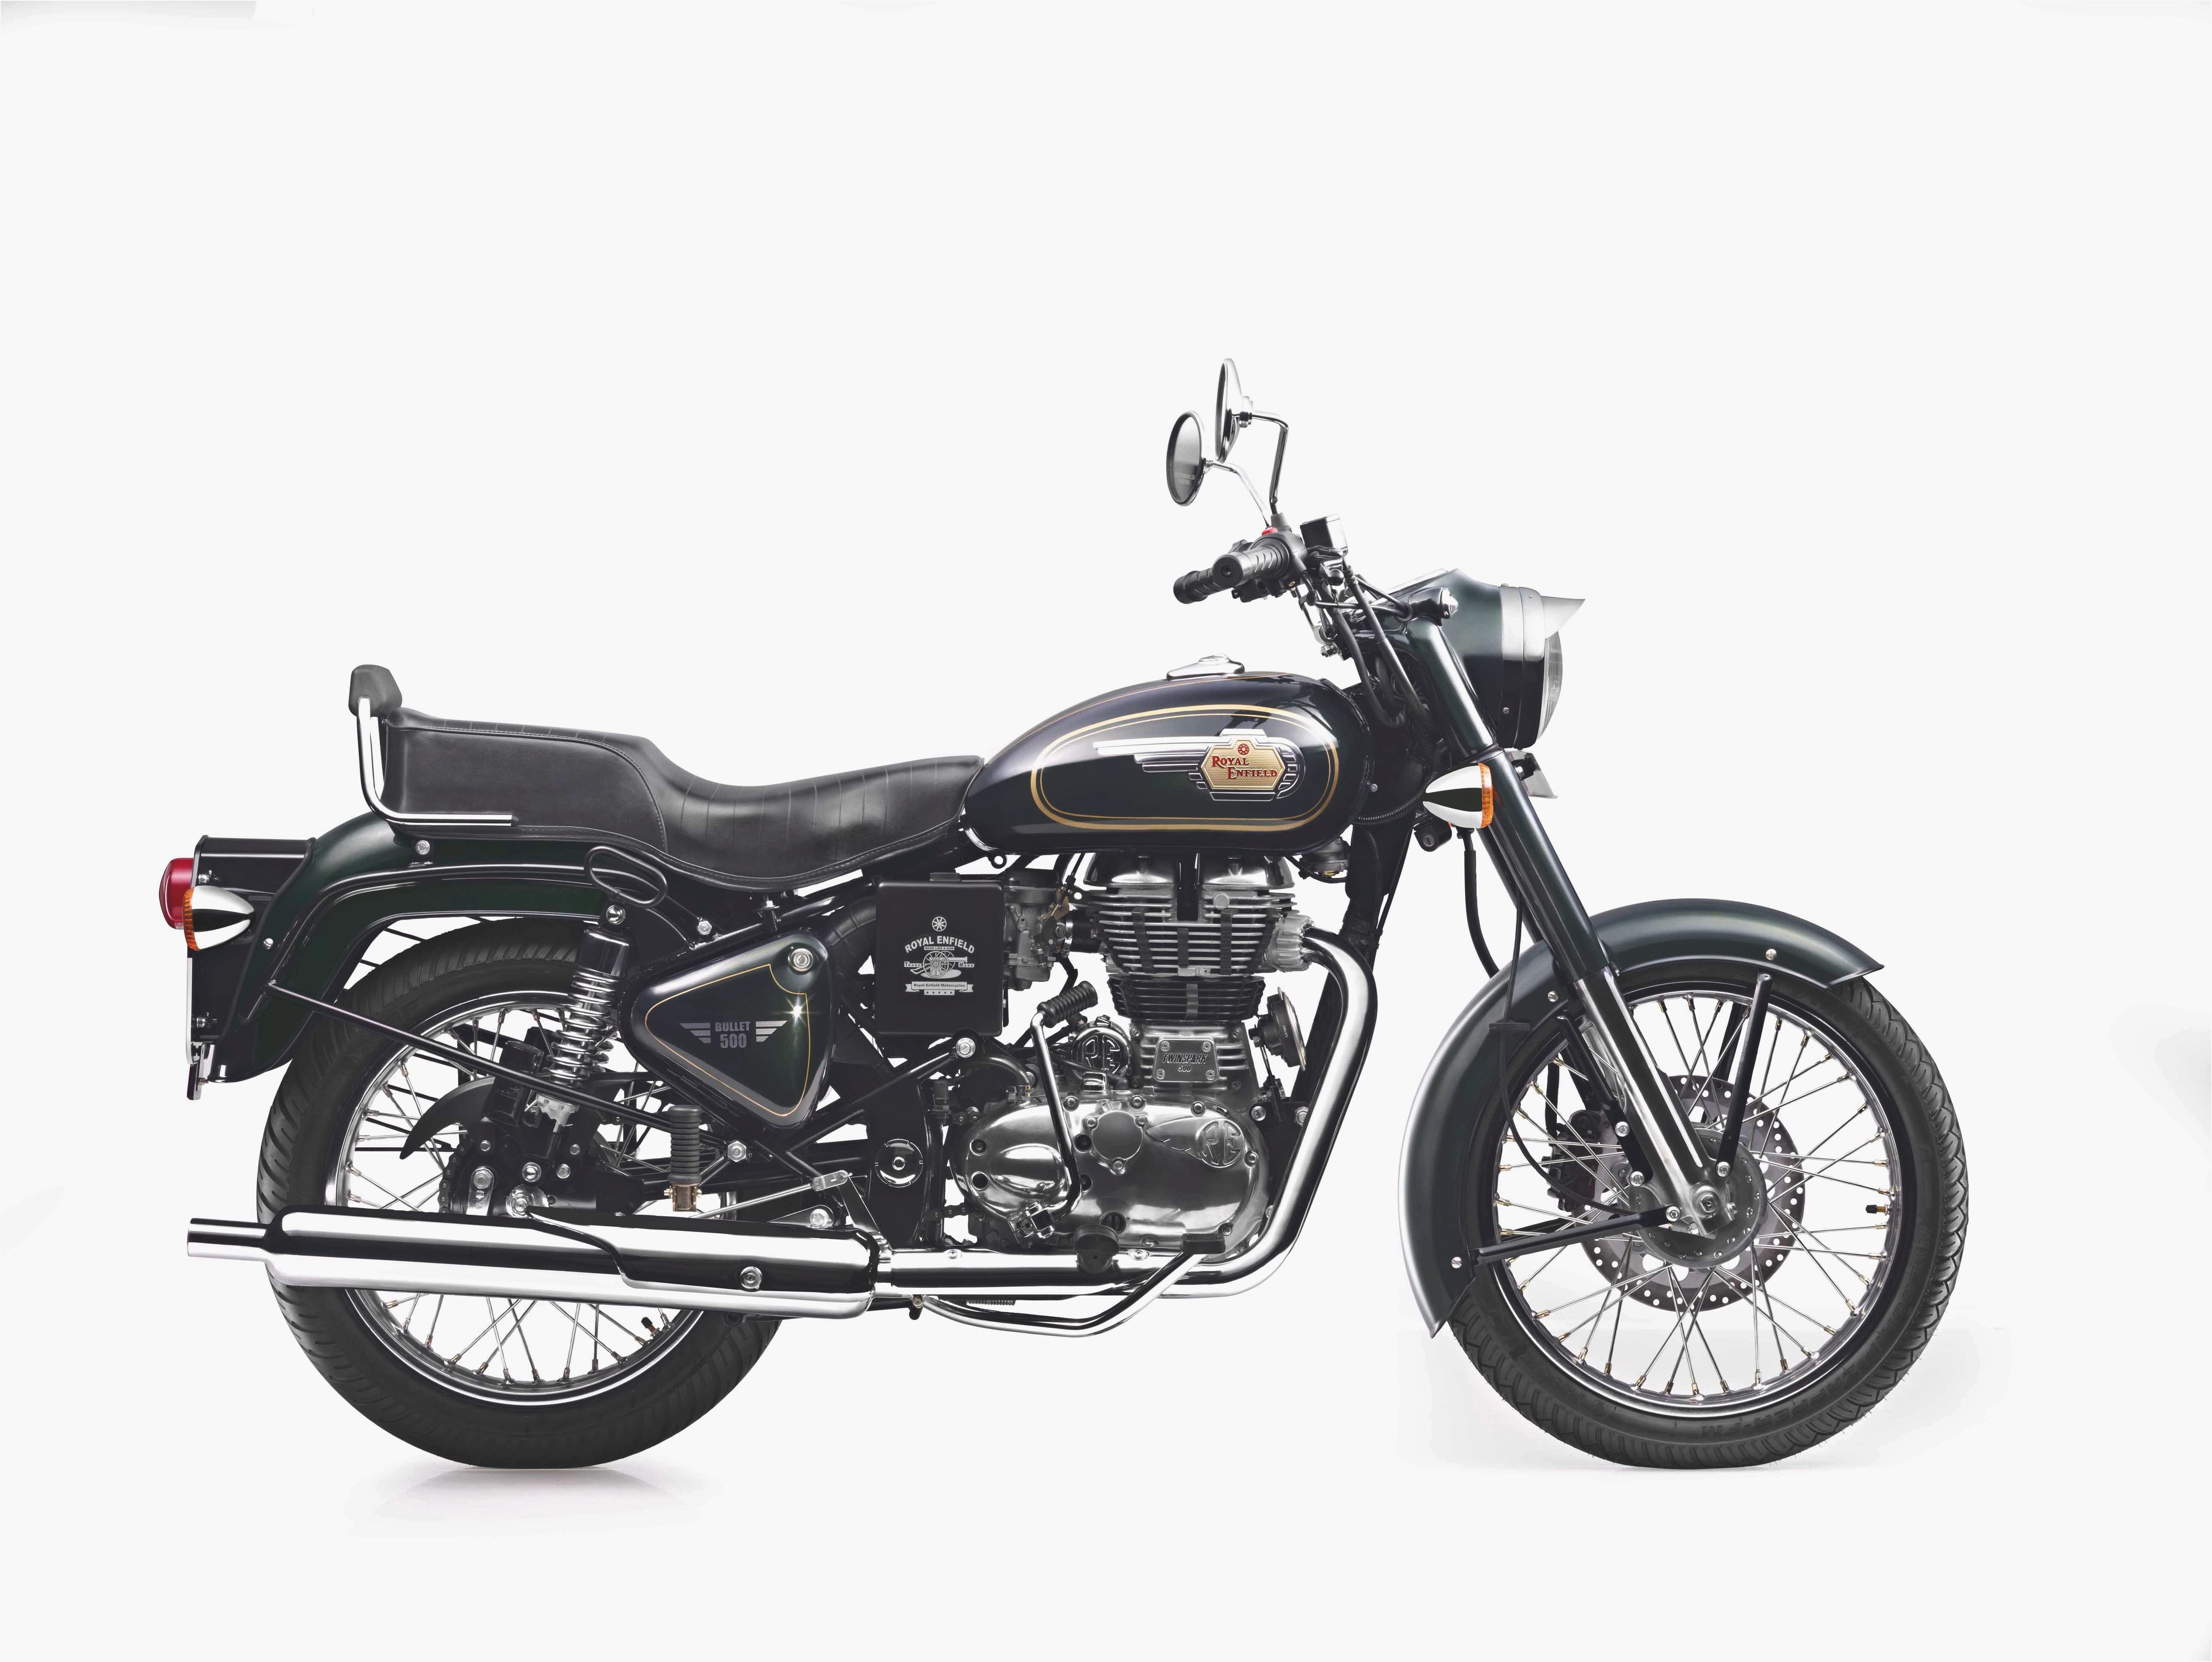 Royal Enfield Bullet 500 Army 1995 images #122805